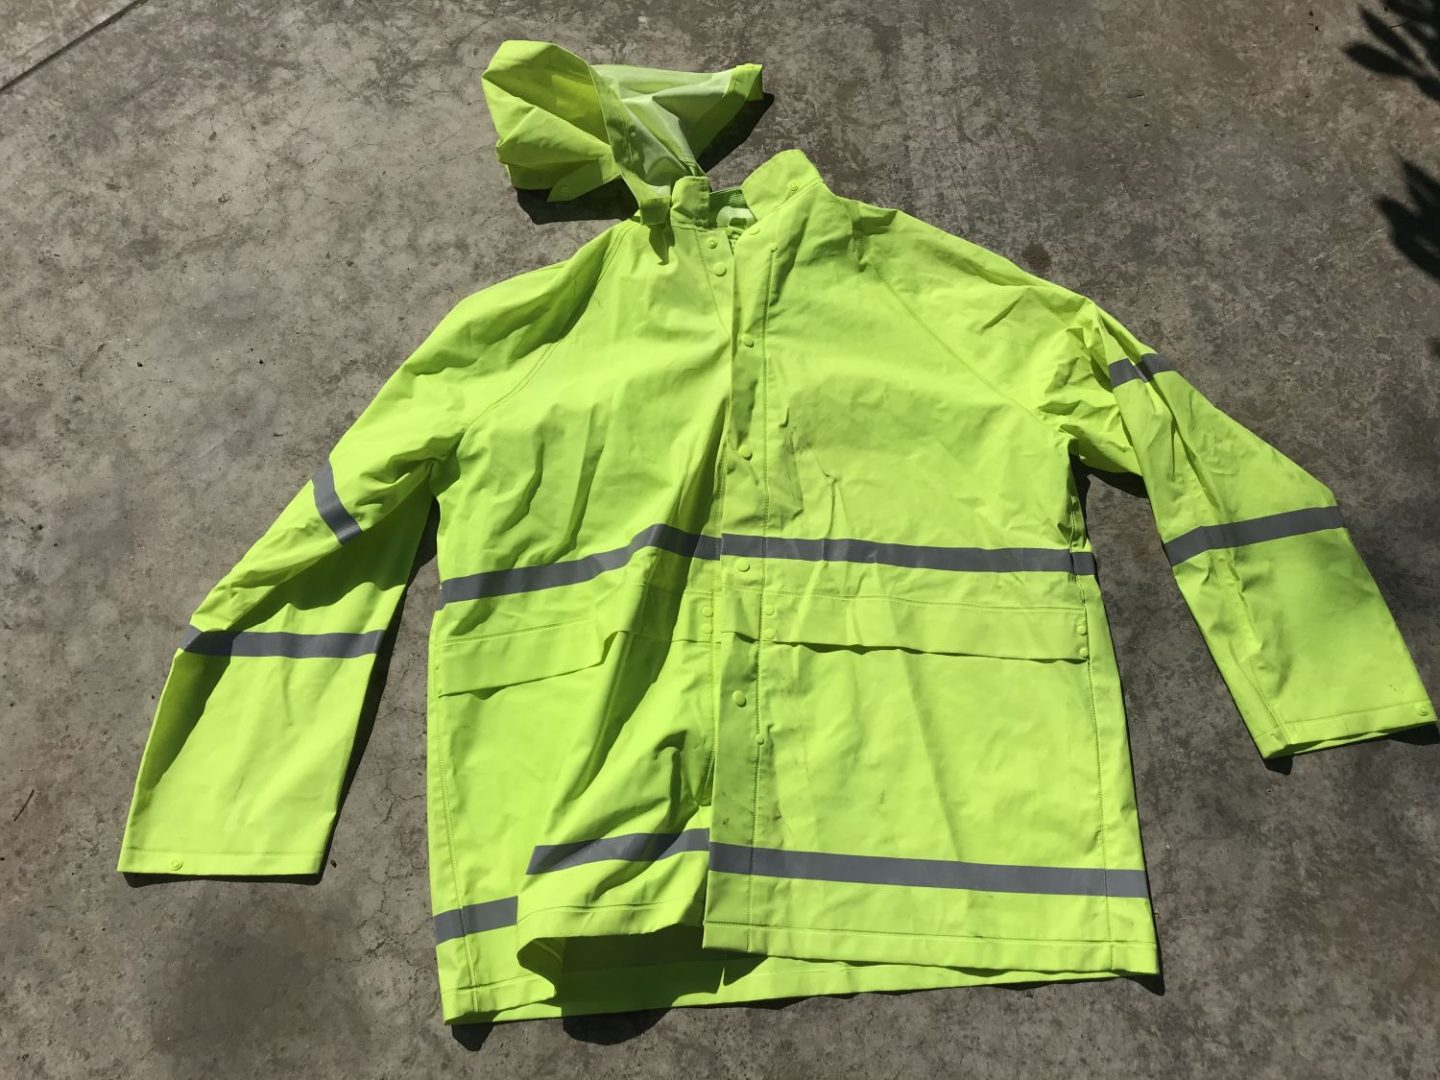 Rain Jacket Photo From Milky Way Photography Safety and Security Tips, Copyright 2020 Stanley Harper